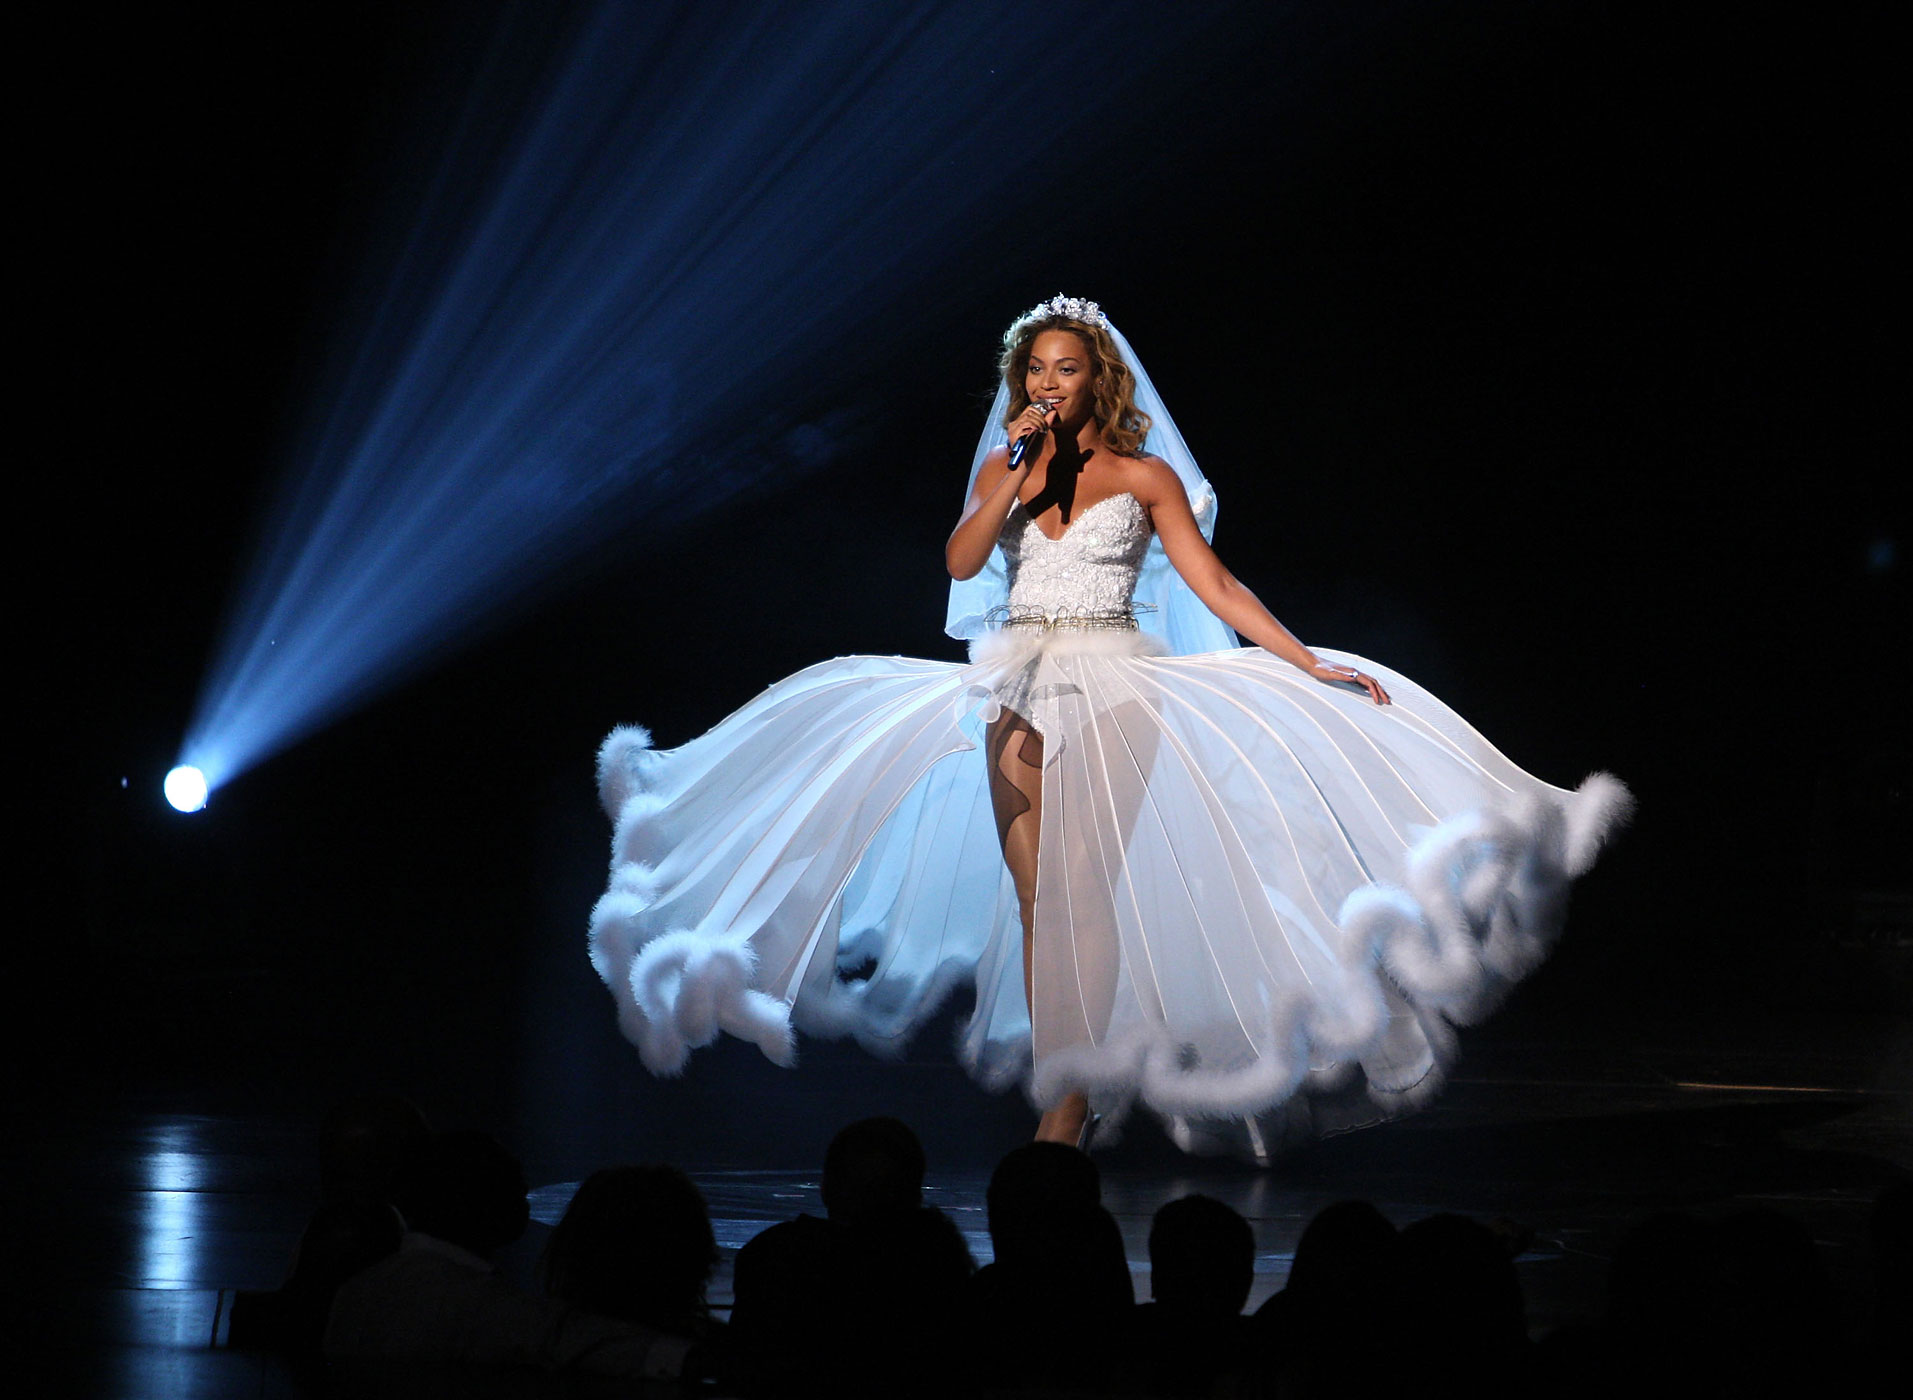 Beyonce onstage at the 2009 BET Awards at the Shrine Auditorium on June 28, 2009 in Los Angeles, California.